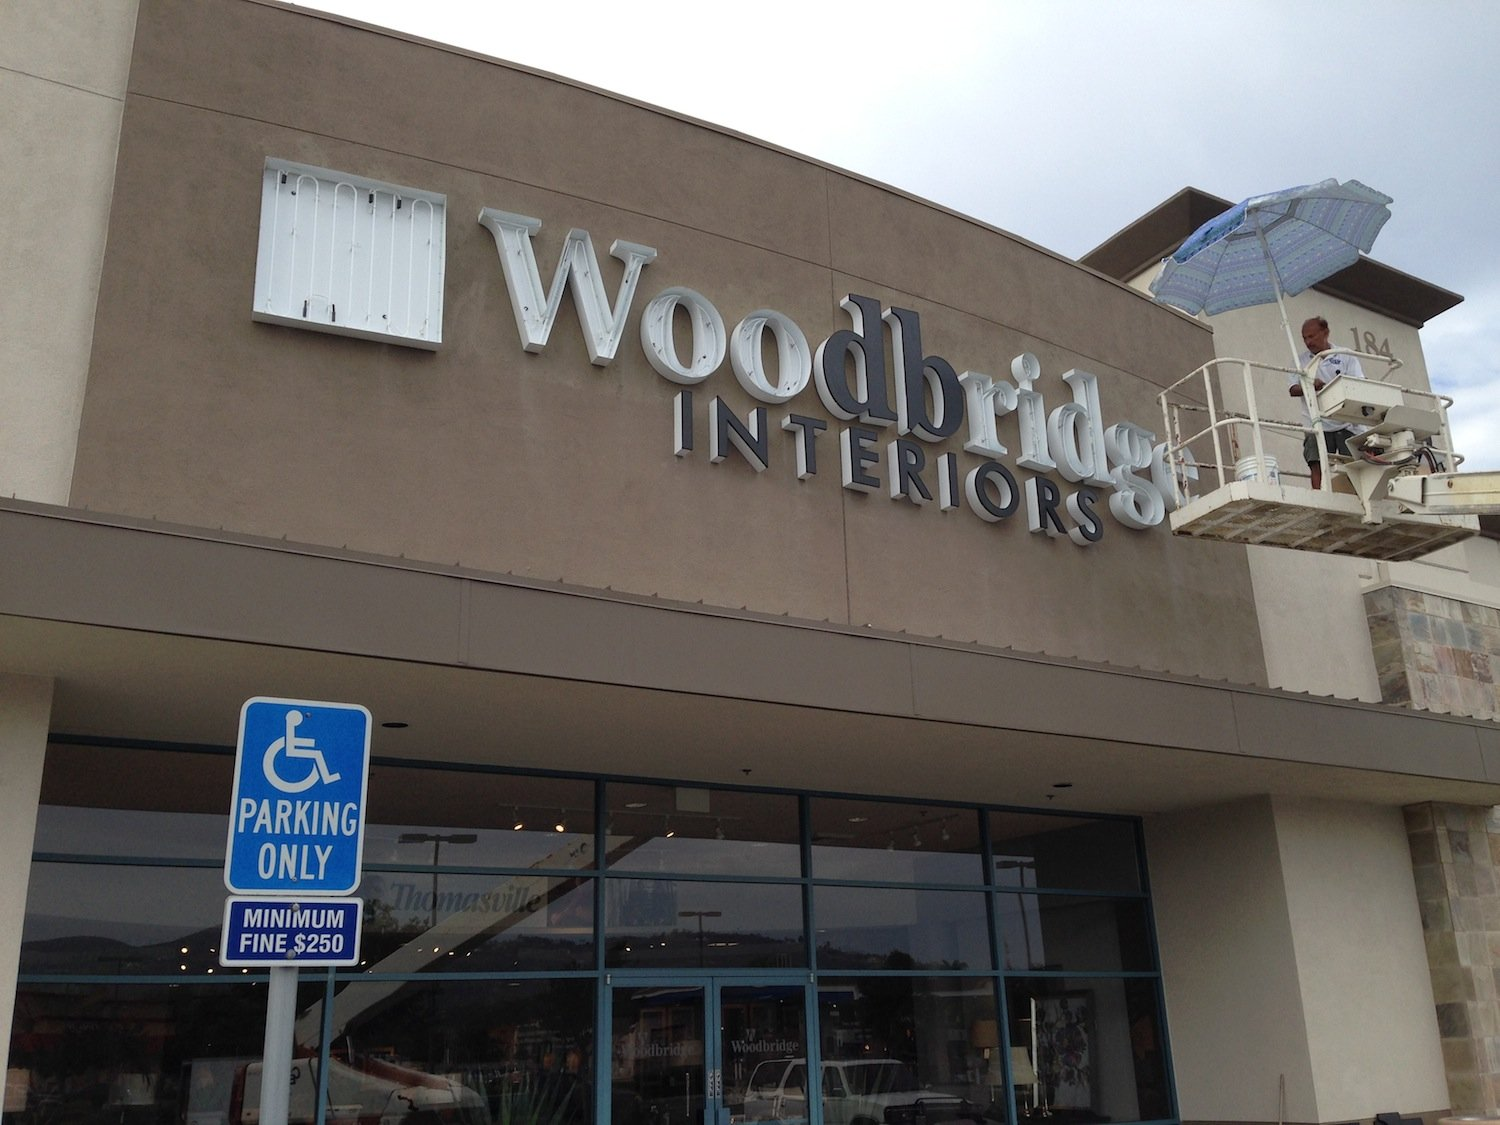 Woodbridge Interiors - San Marcos, San Diego